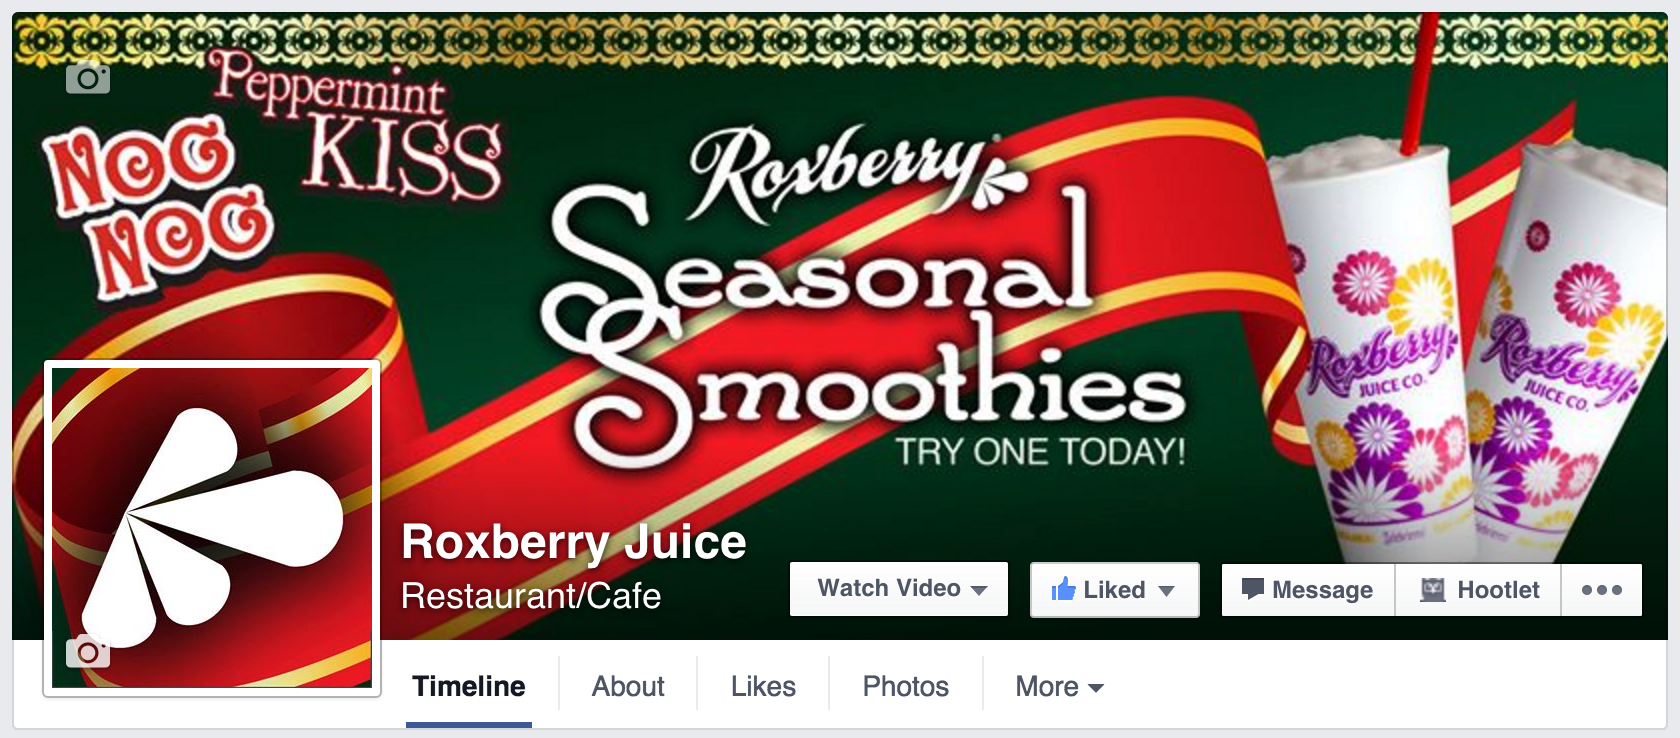 Roxberry Juice - Facebook